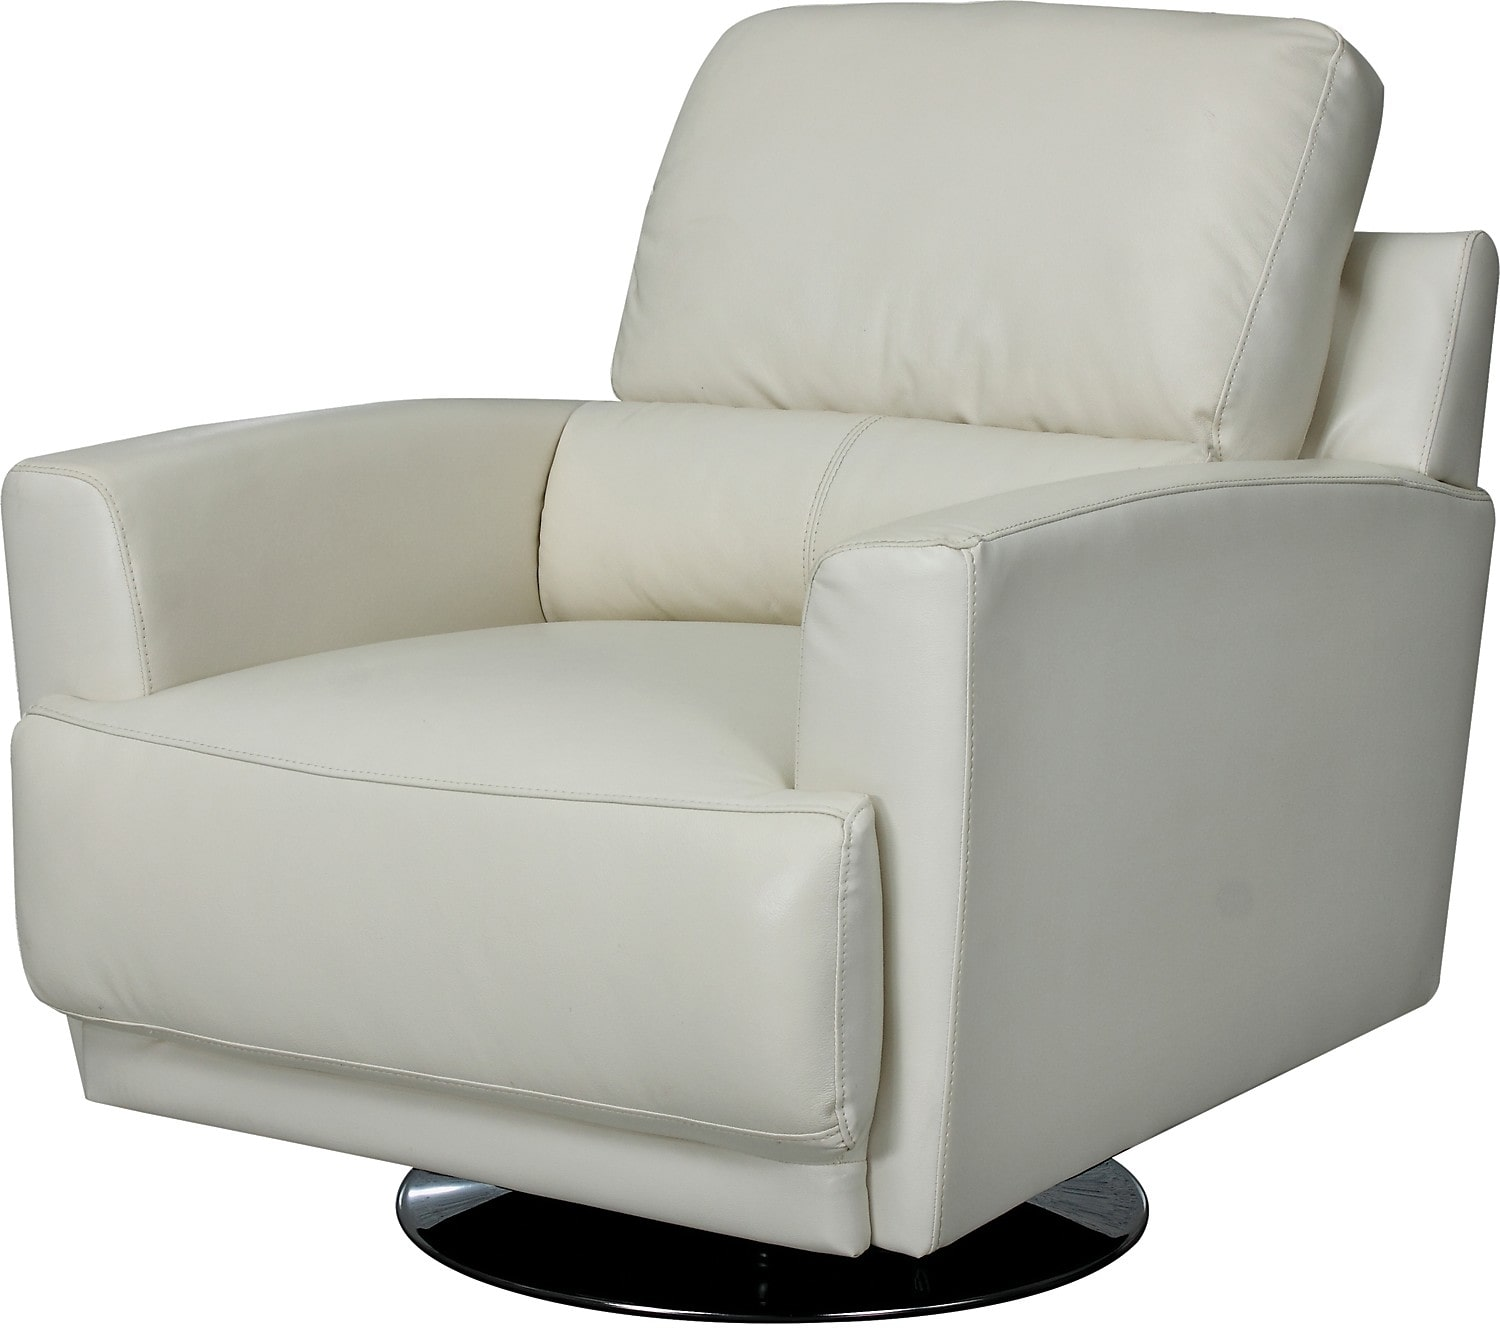 Living Room Furniture - Nico Genuine Leather Swivel Chair - Ivory